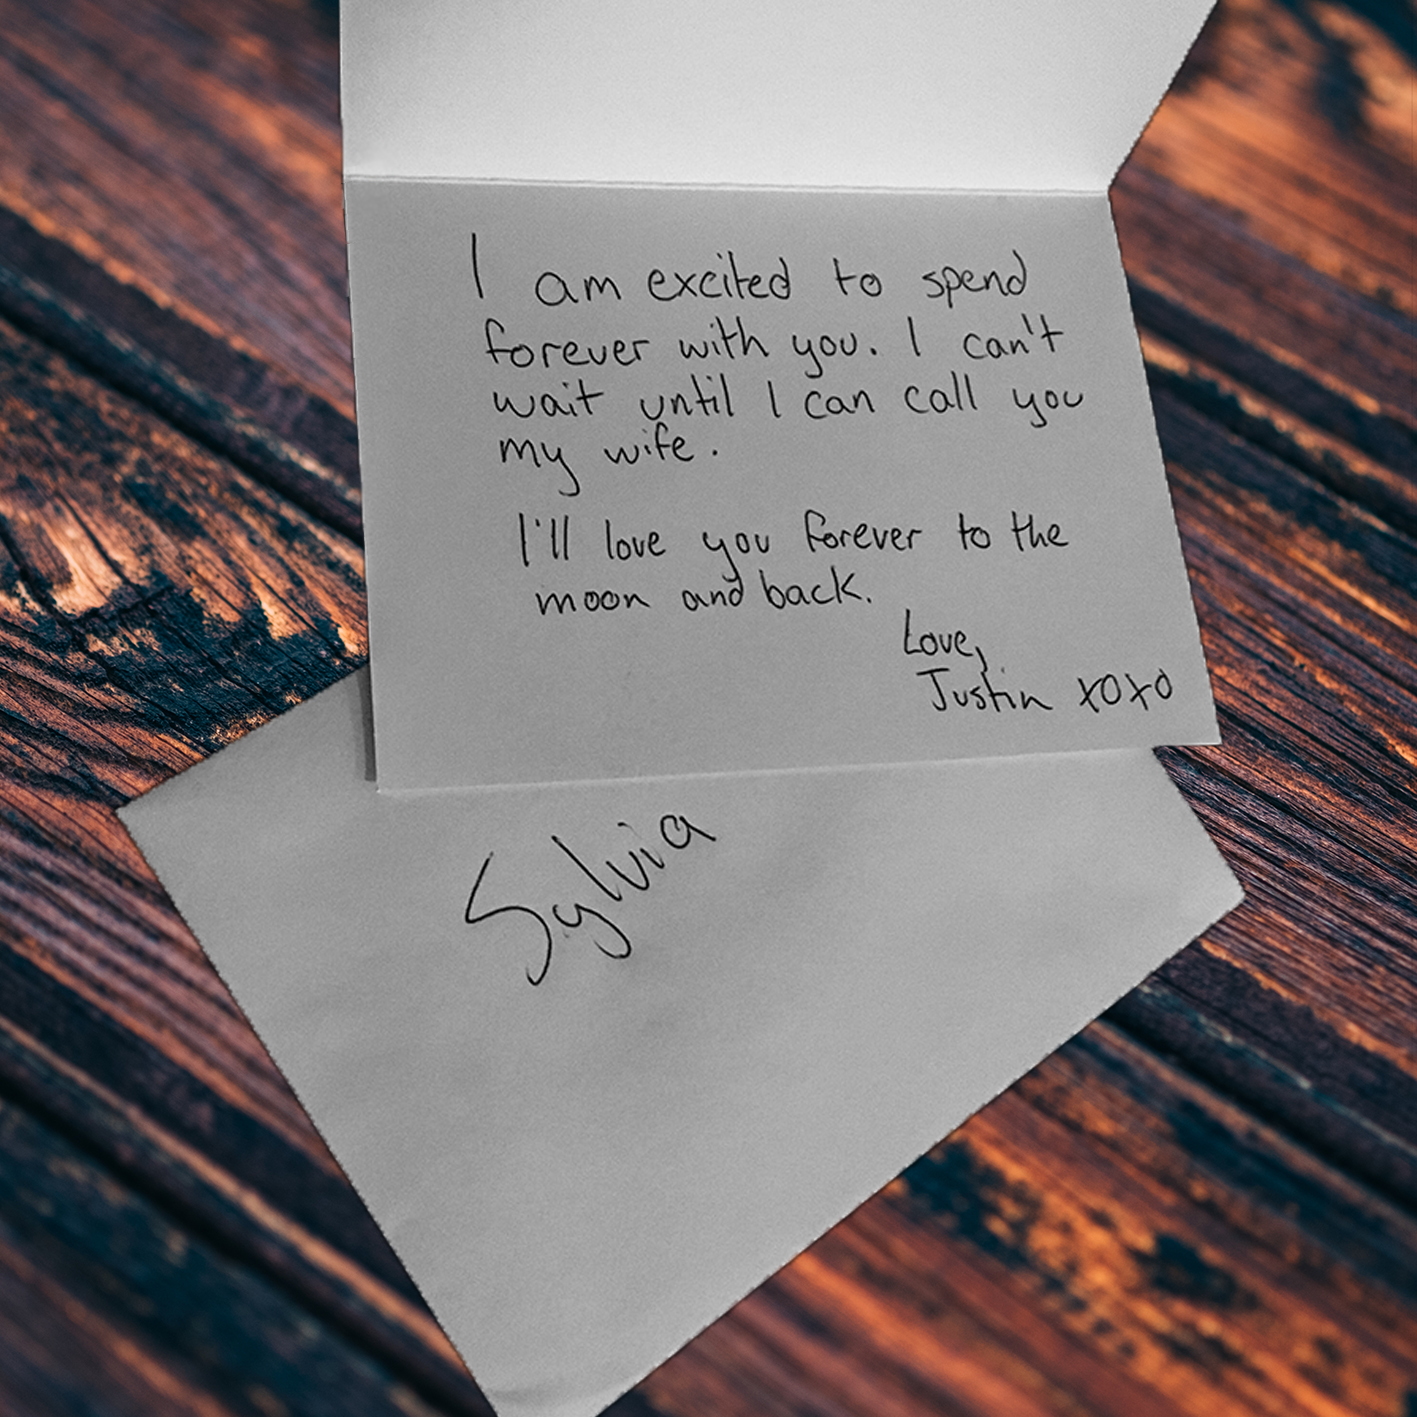 love-letter-she-said-absolutely-proposals-and-romantic-events-planner-ideas-banff-alberta